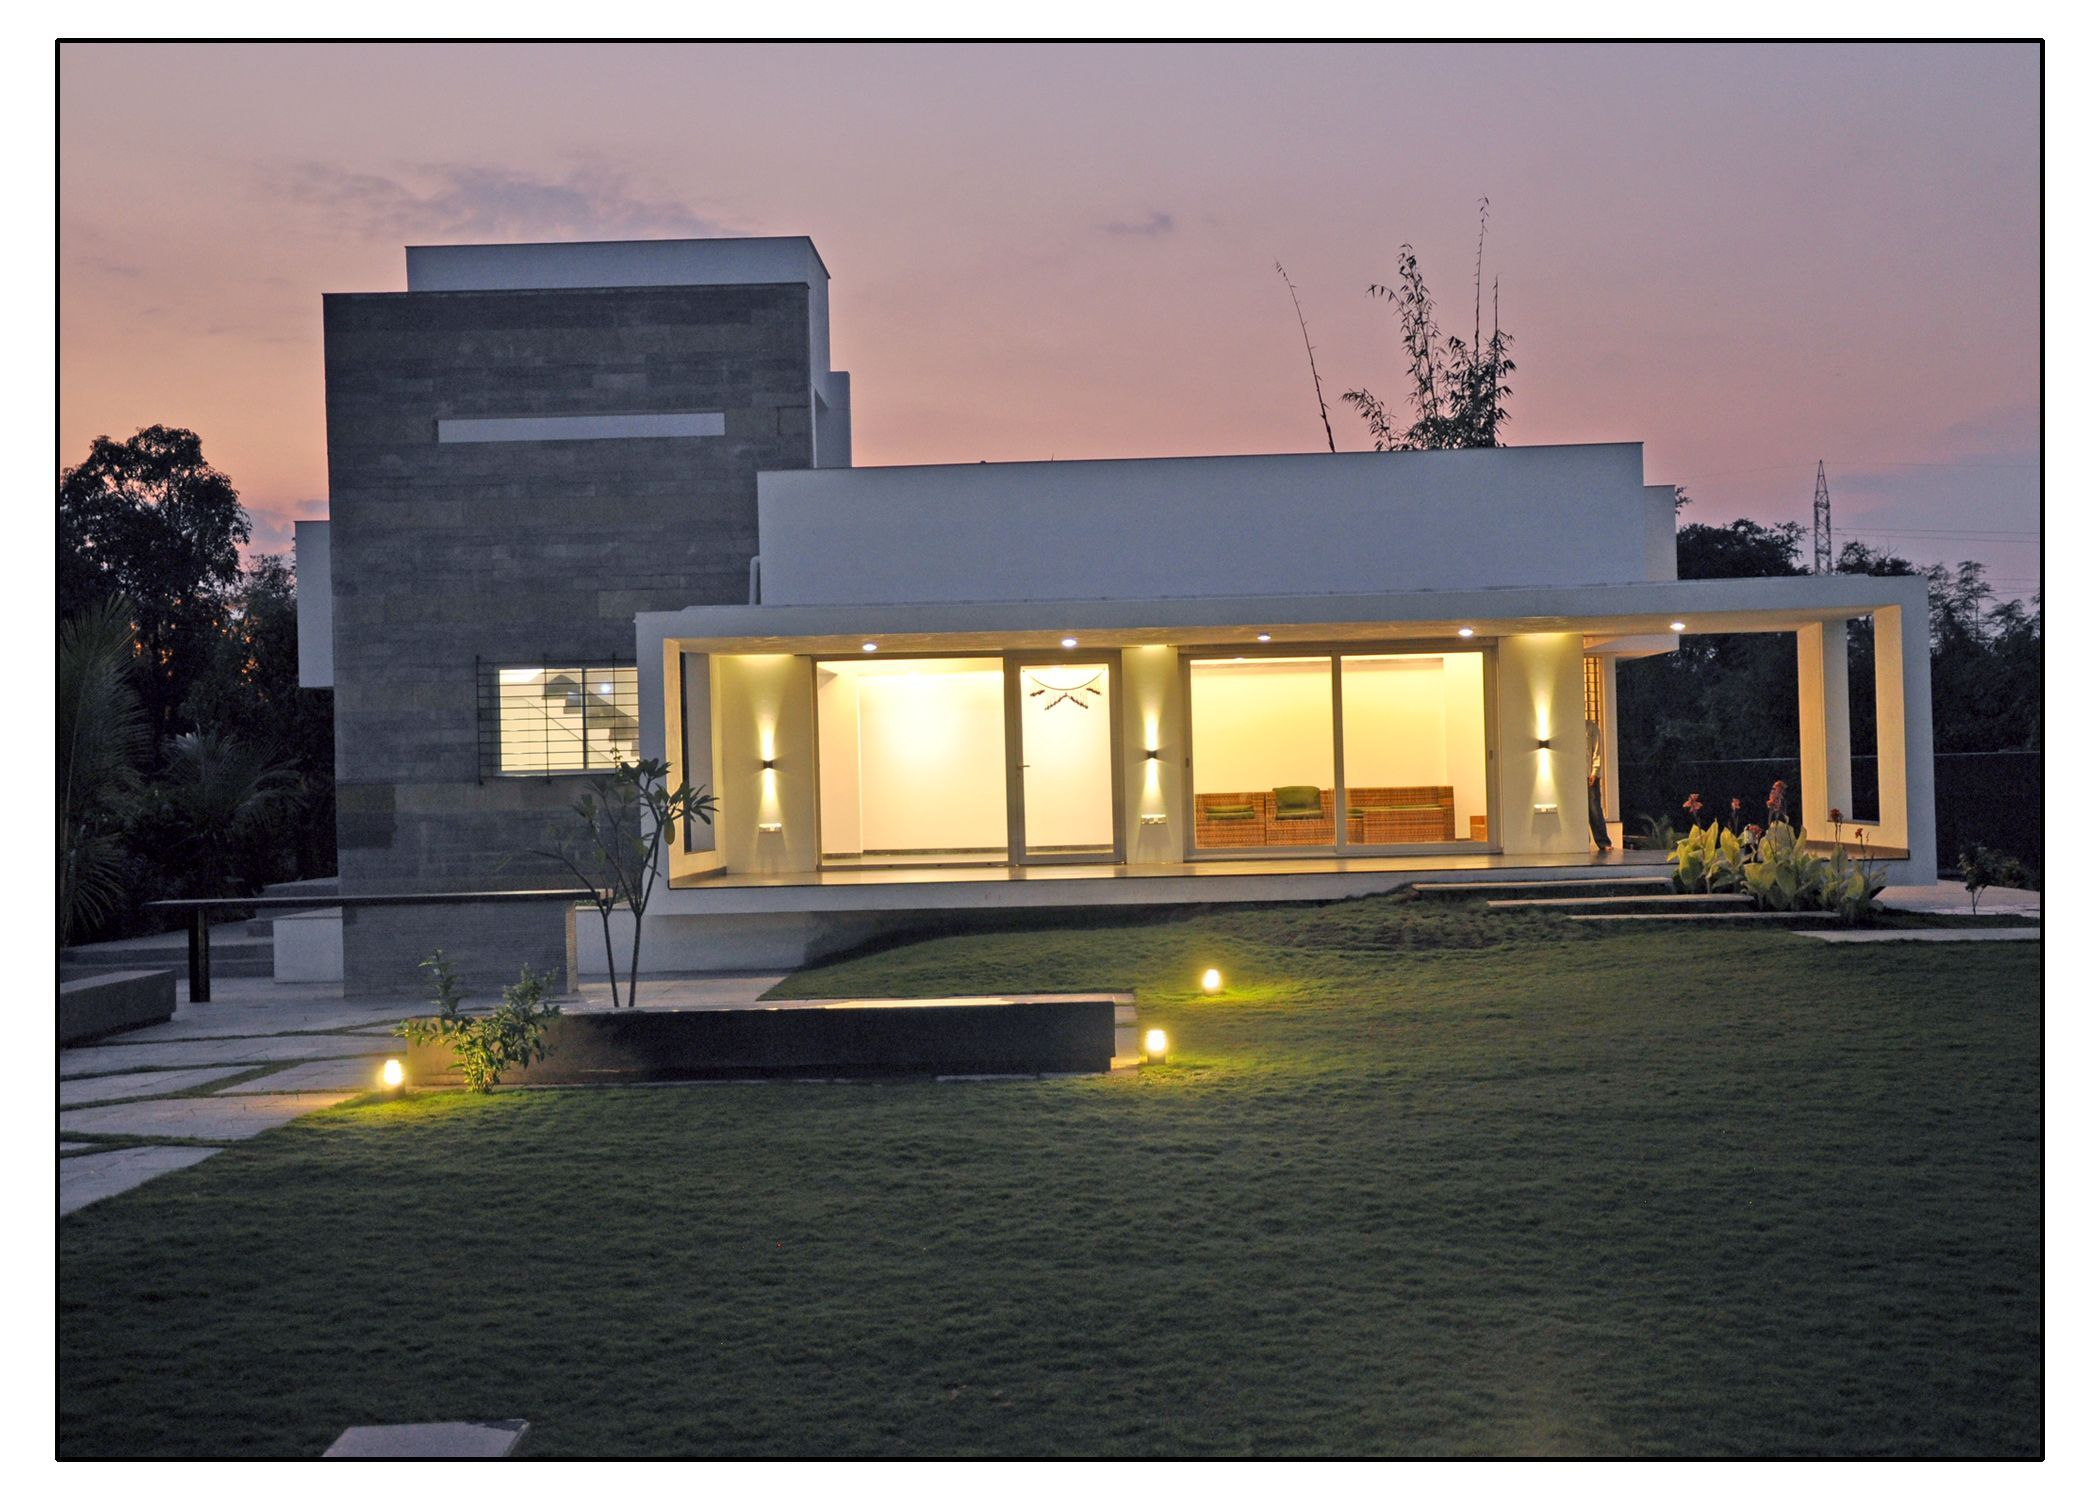 Architecture and interior design projects in india for Architecture design for house in india